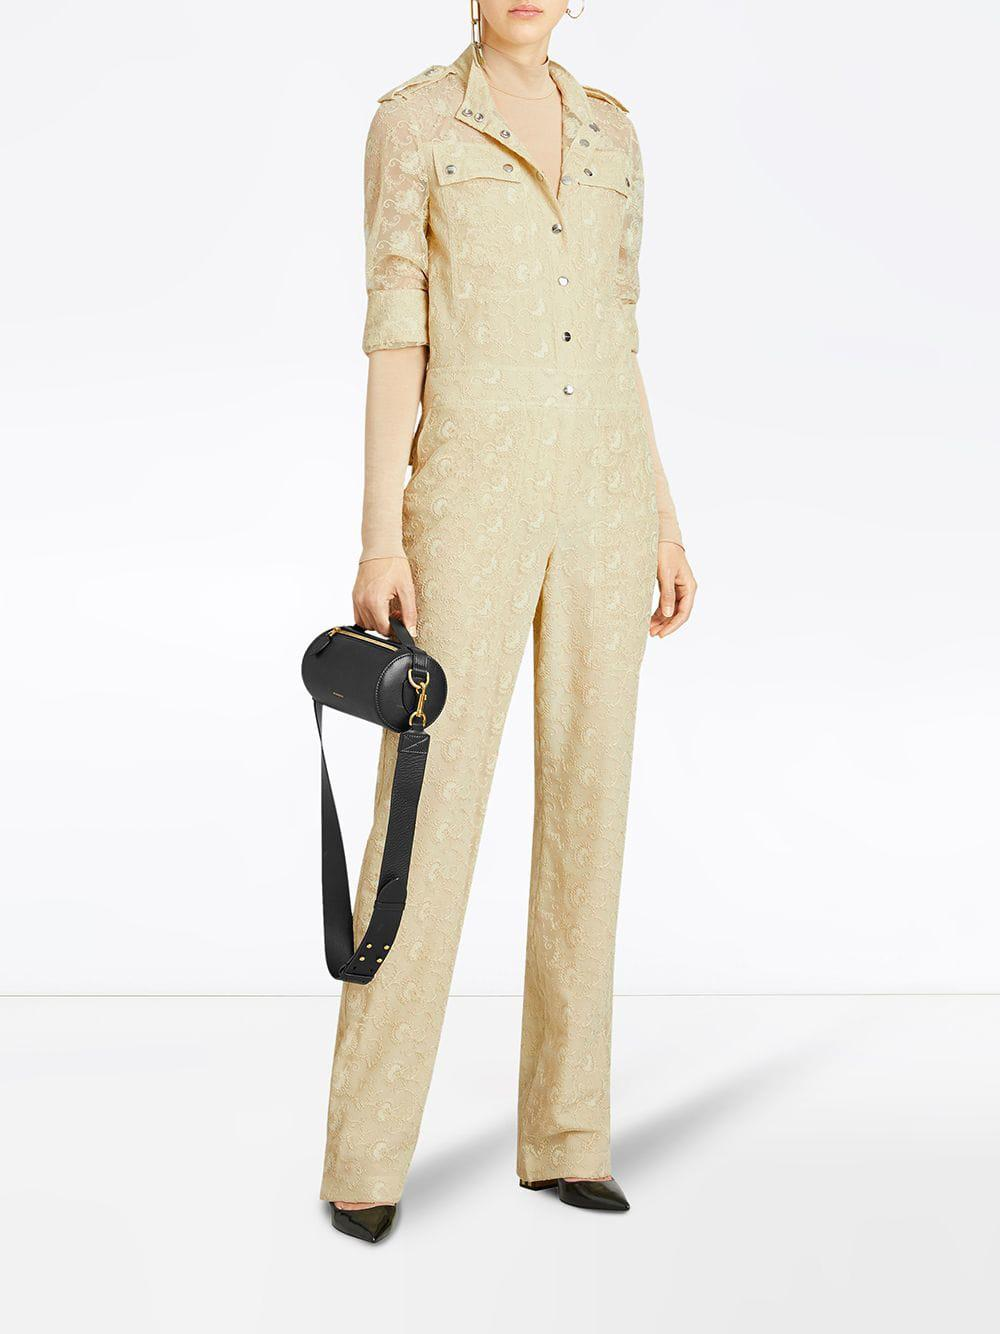 0e7e235c188 Burberry Floral Lace Jumpsuit in Yellow - Save 50.0% - Lyst